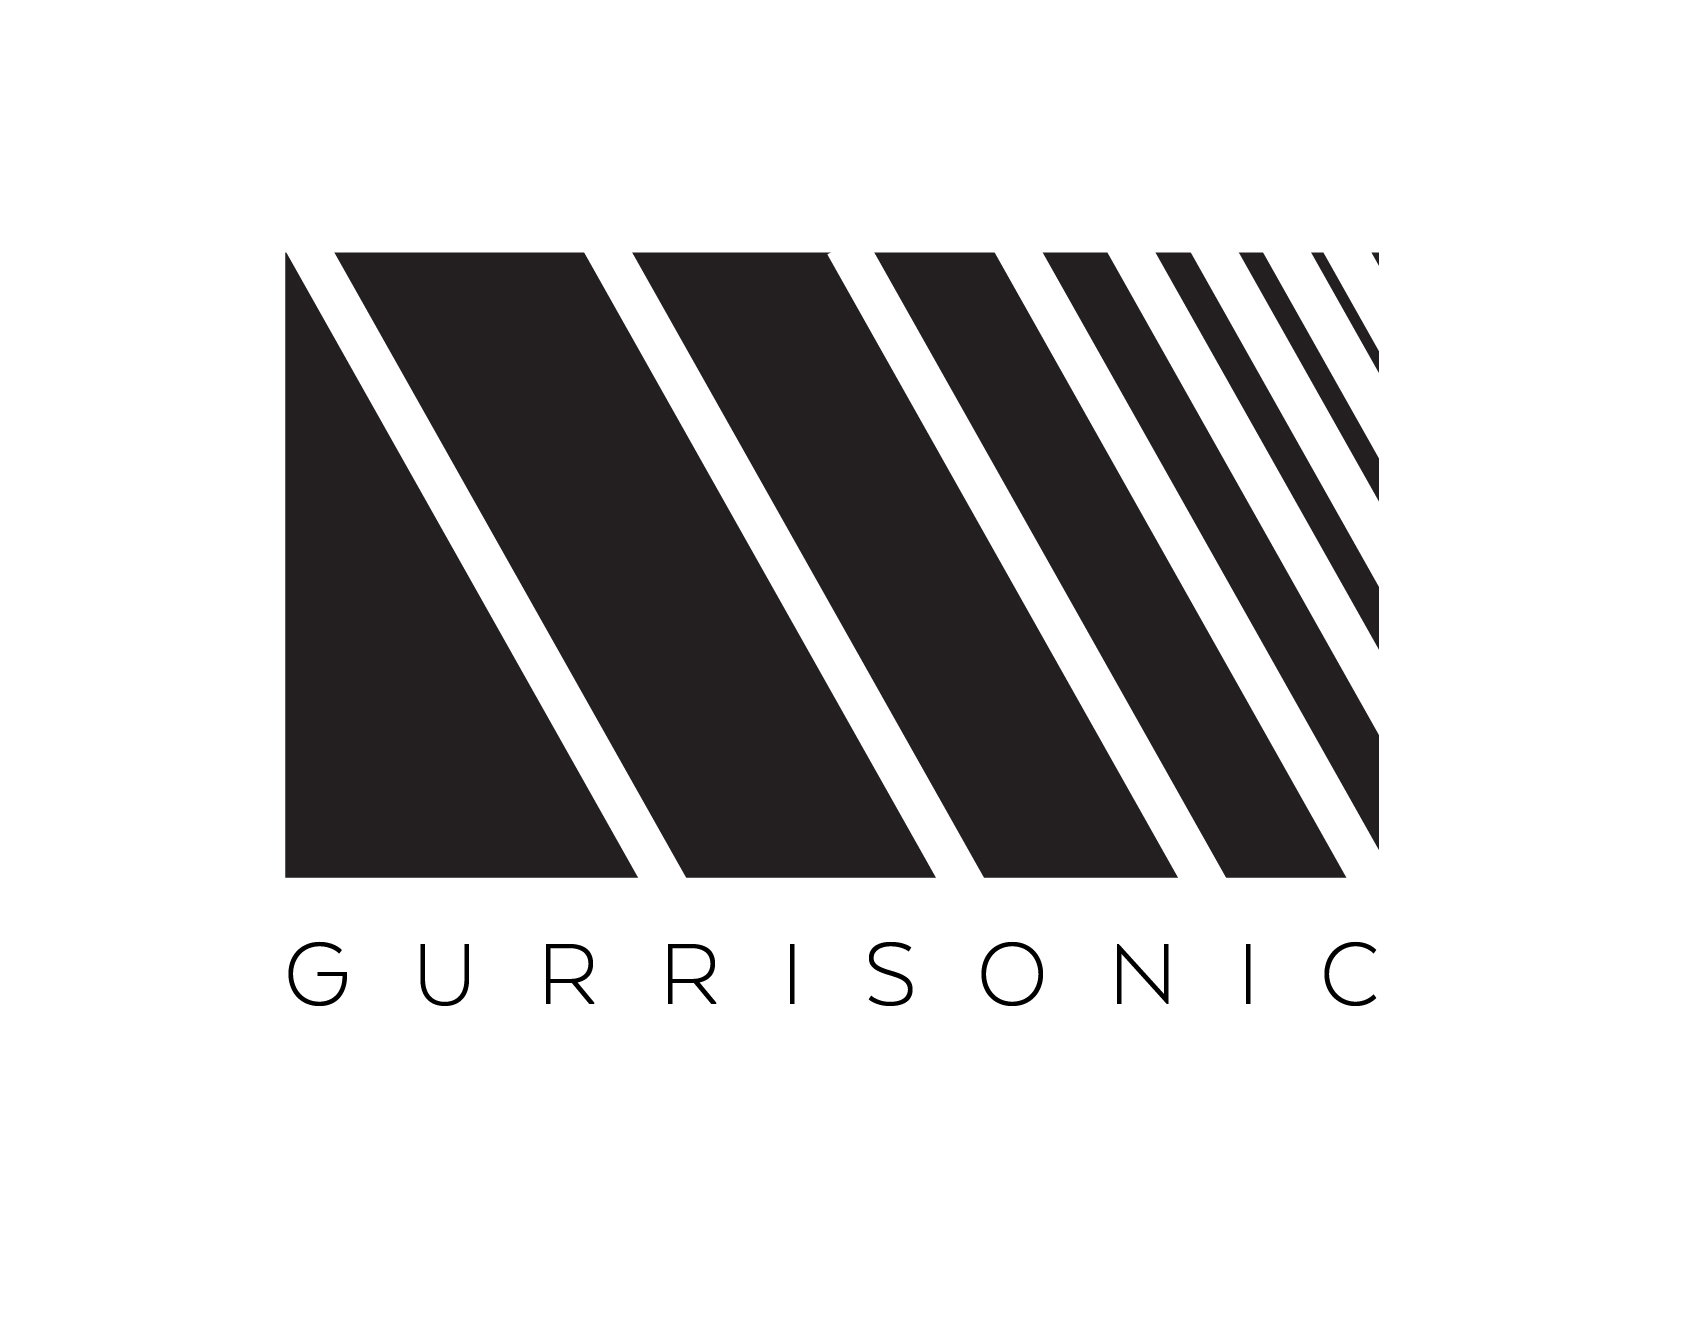 Gurrisonic Logo Design